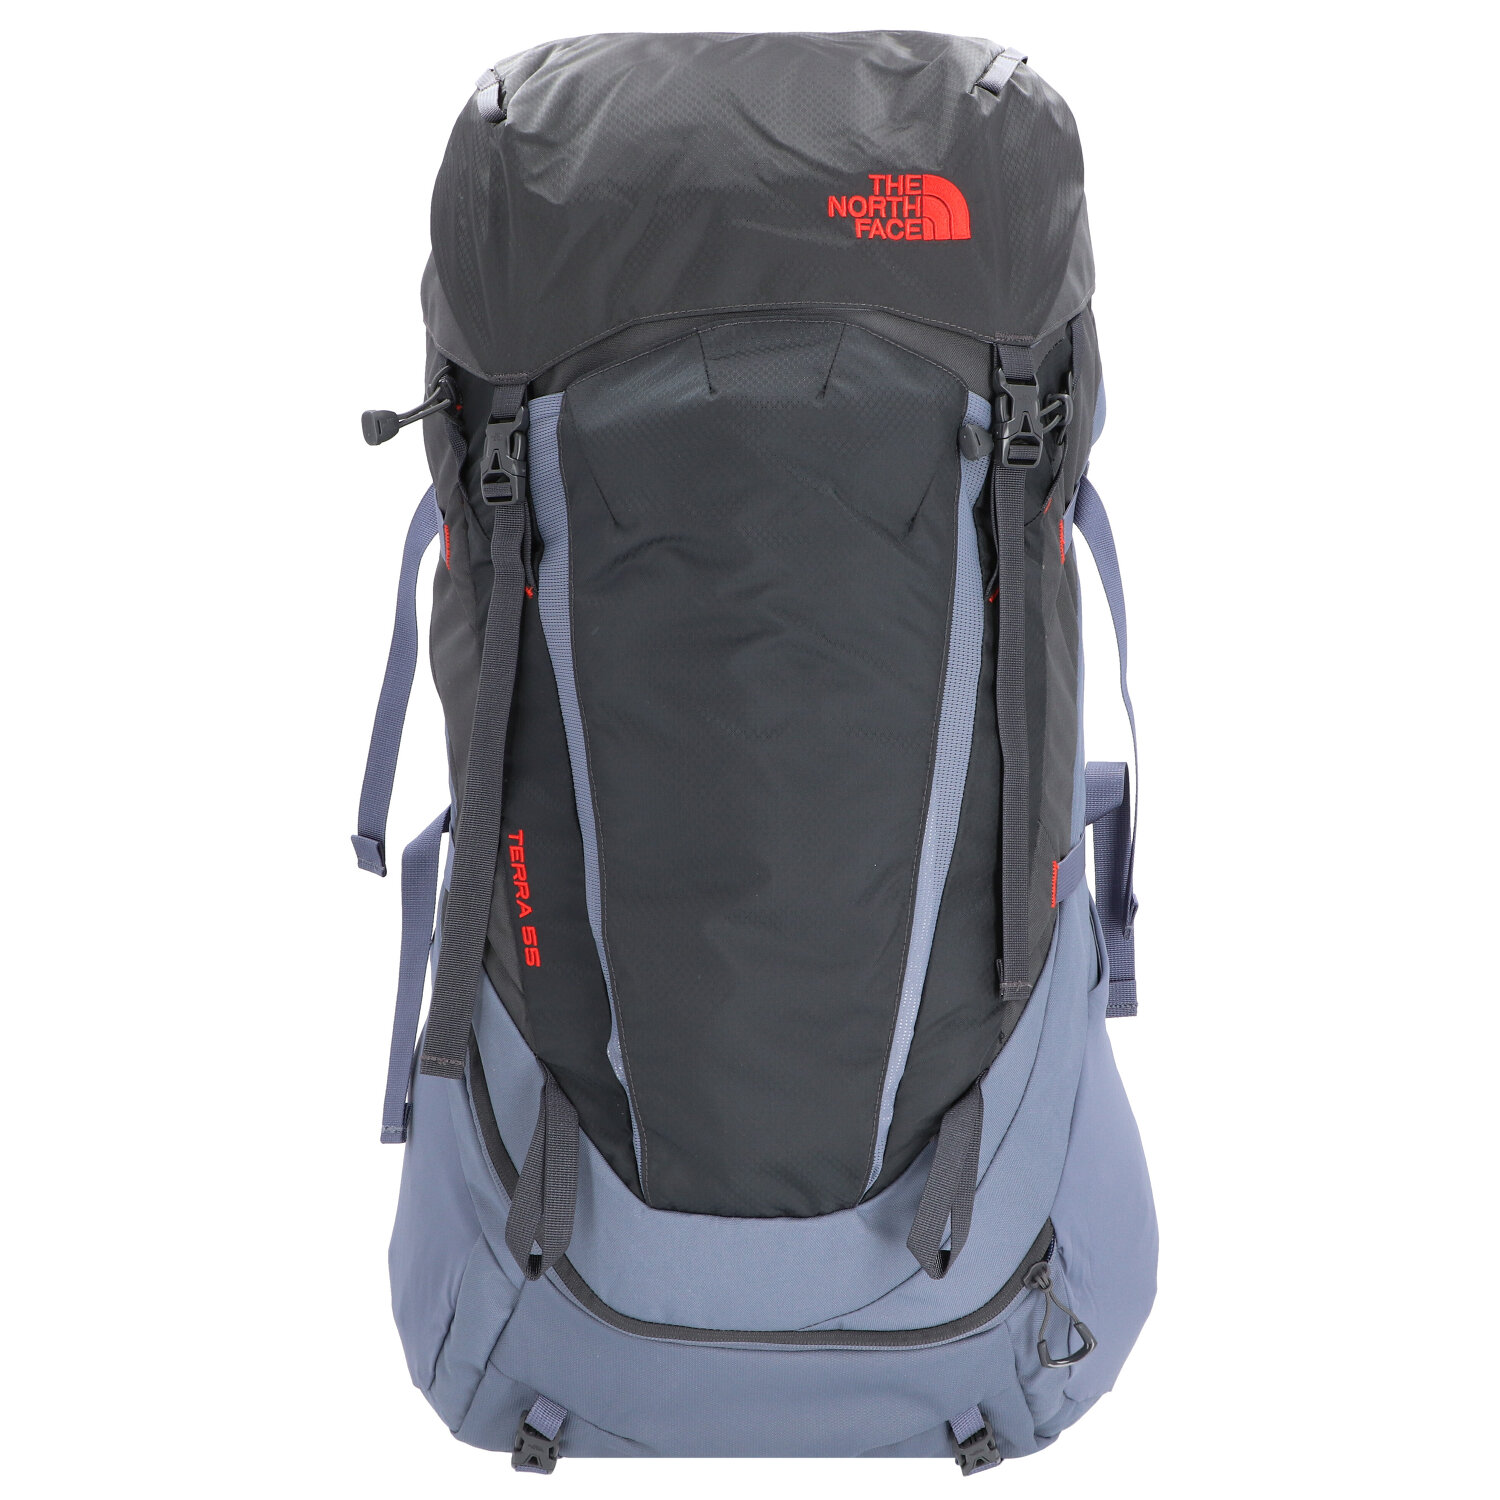 The North Face Terra 55 Sac à dos 63 cm grisaille gry